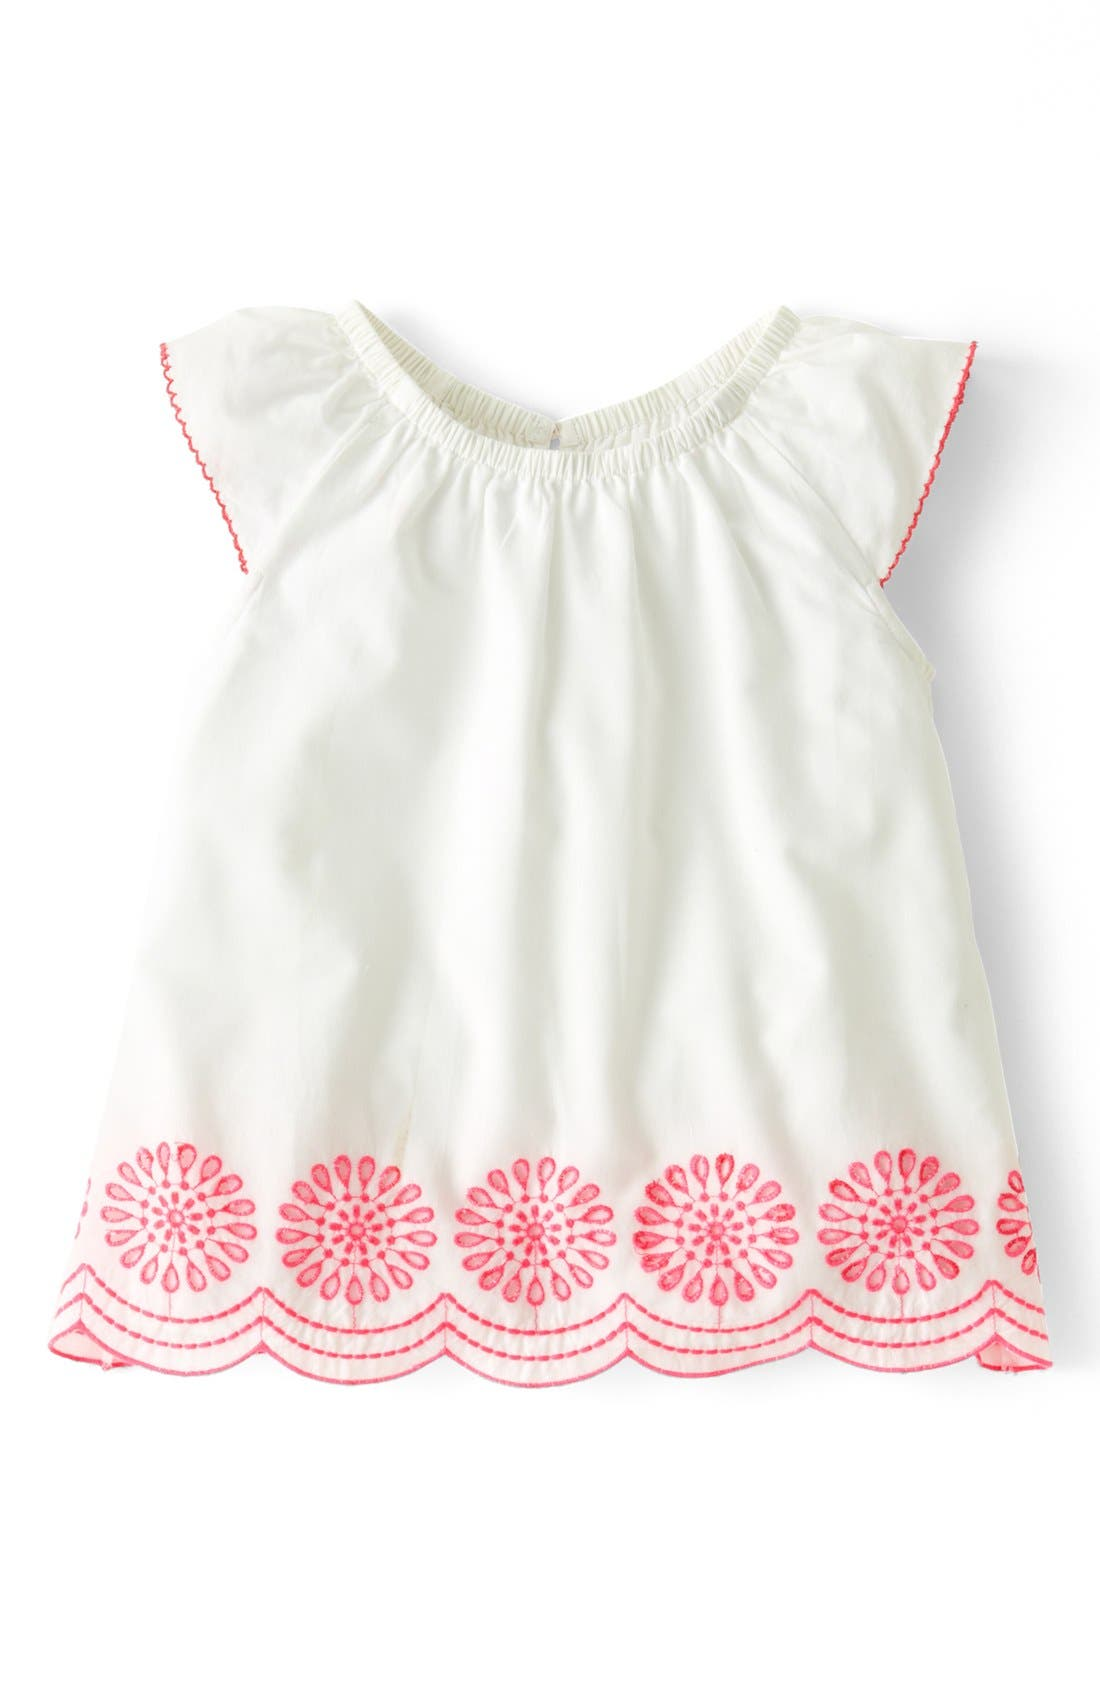 Main Image - Mini Boden 'Broderie' Cotton Cambric A-Line Top (Toddler Girls)